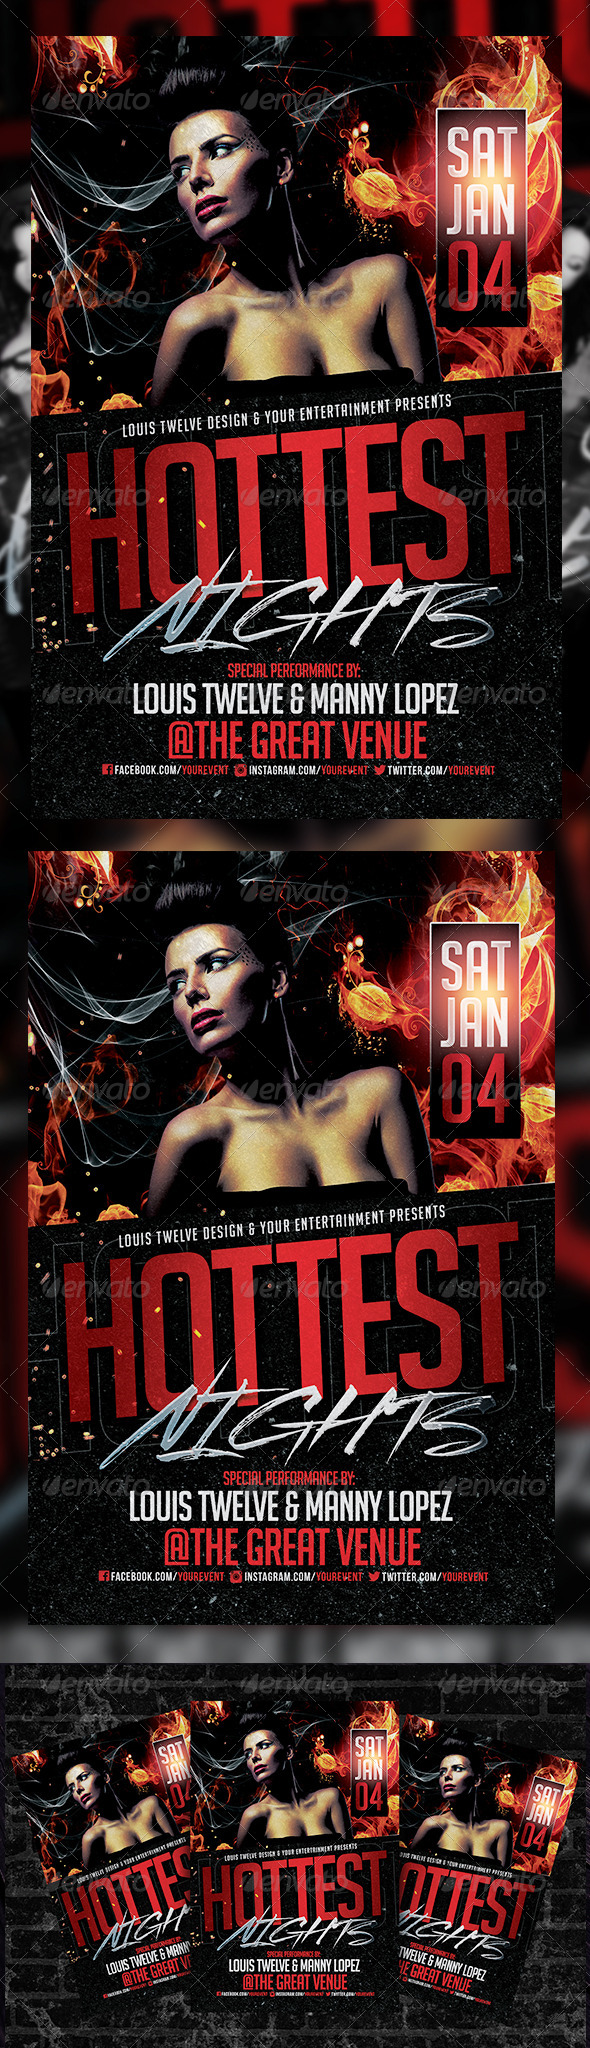 Hottest Nights Flyer Template - Clubs & Parties Events